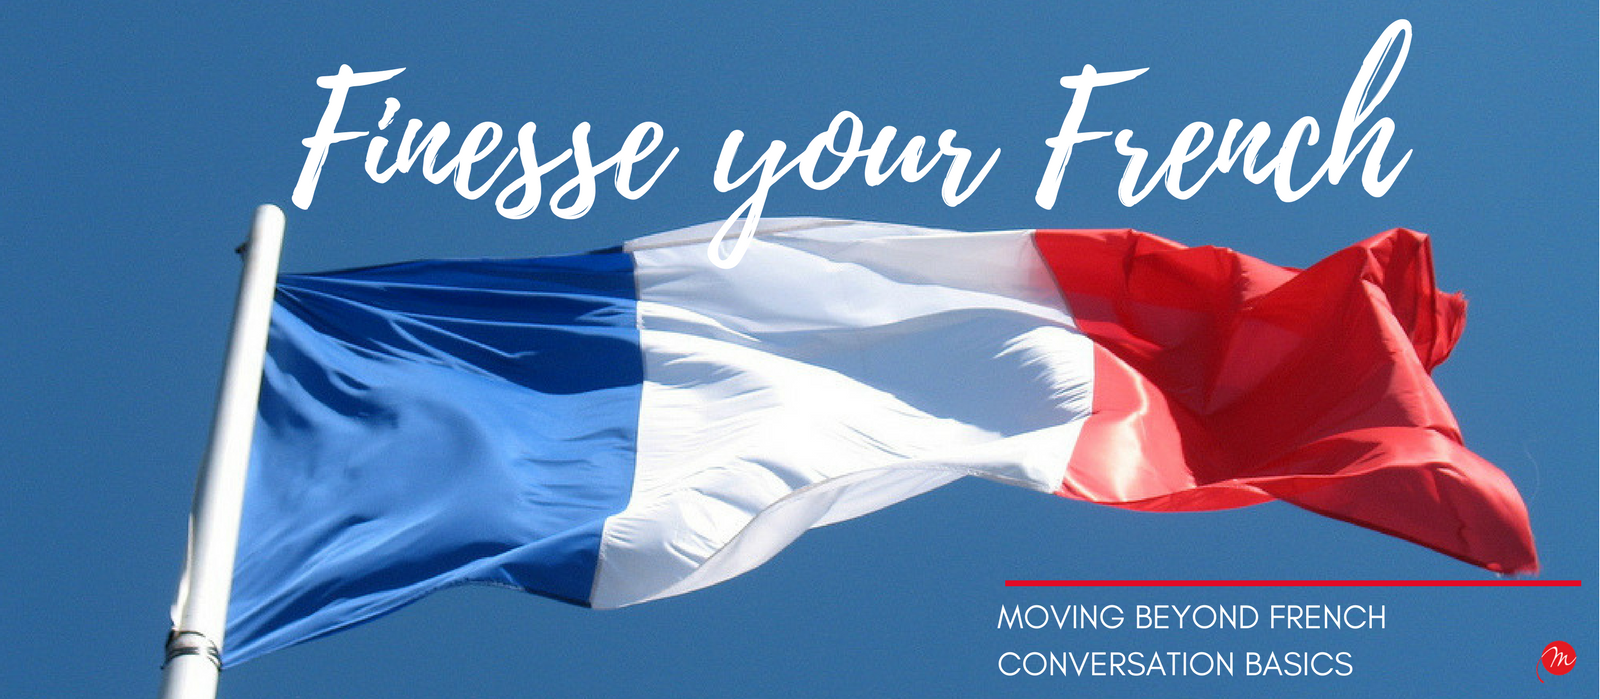 MyFrenchLife.org - My French Life™ - Finesse your French - Moving beyond French Conversation Basics - Header